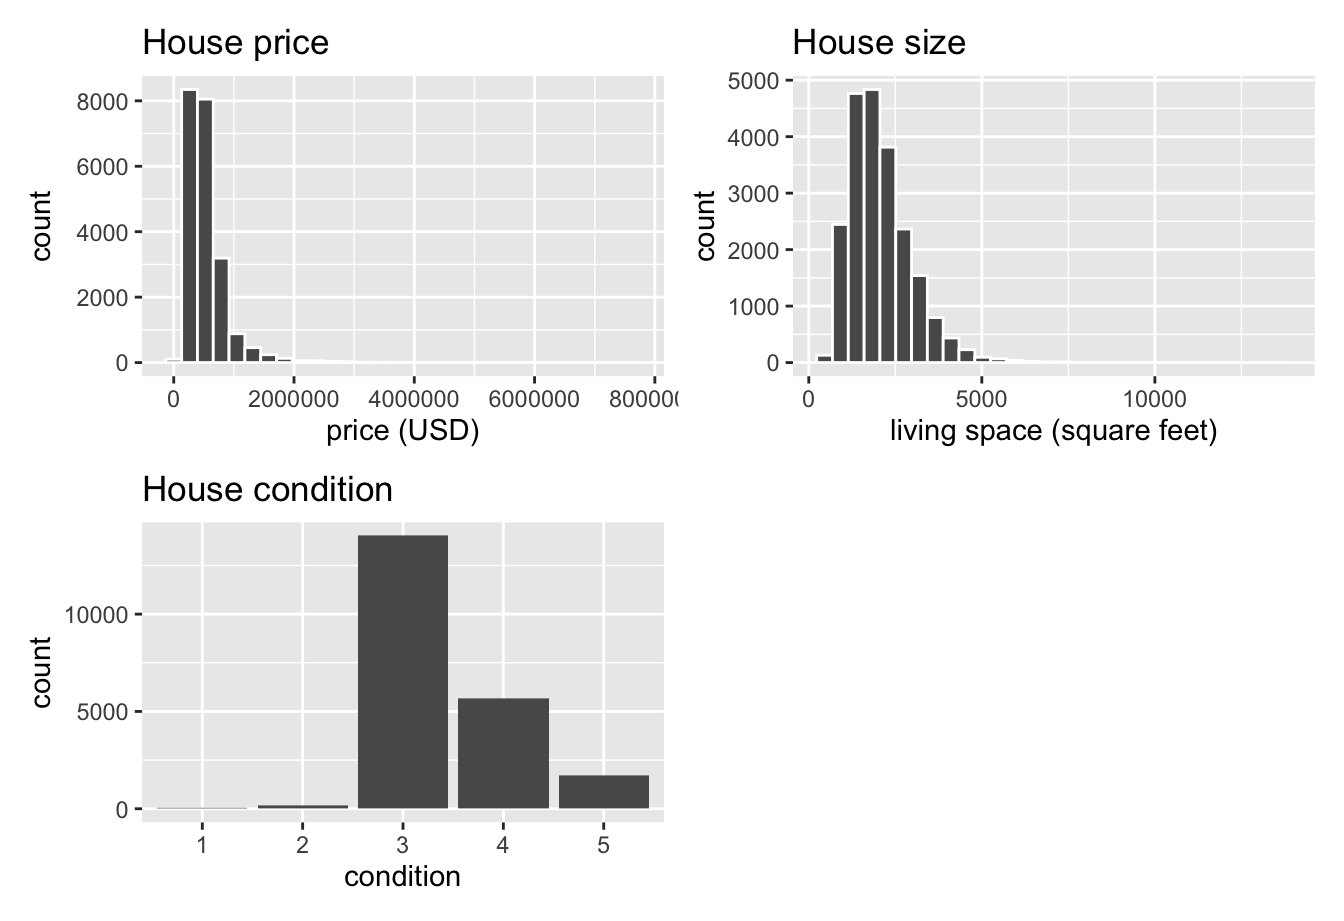 Exploratory visualizations of Seattle house prices data.